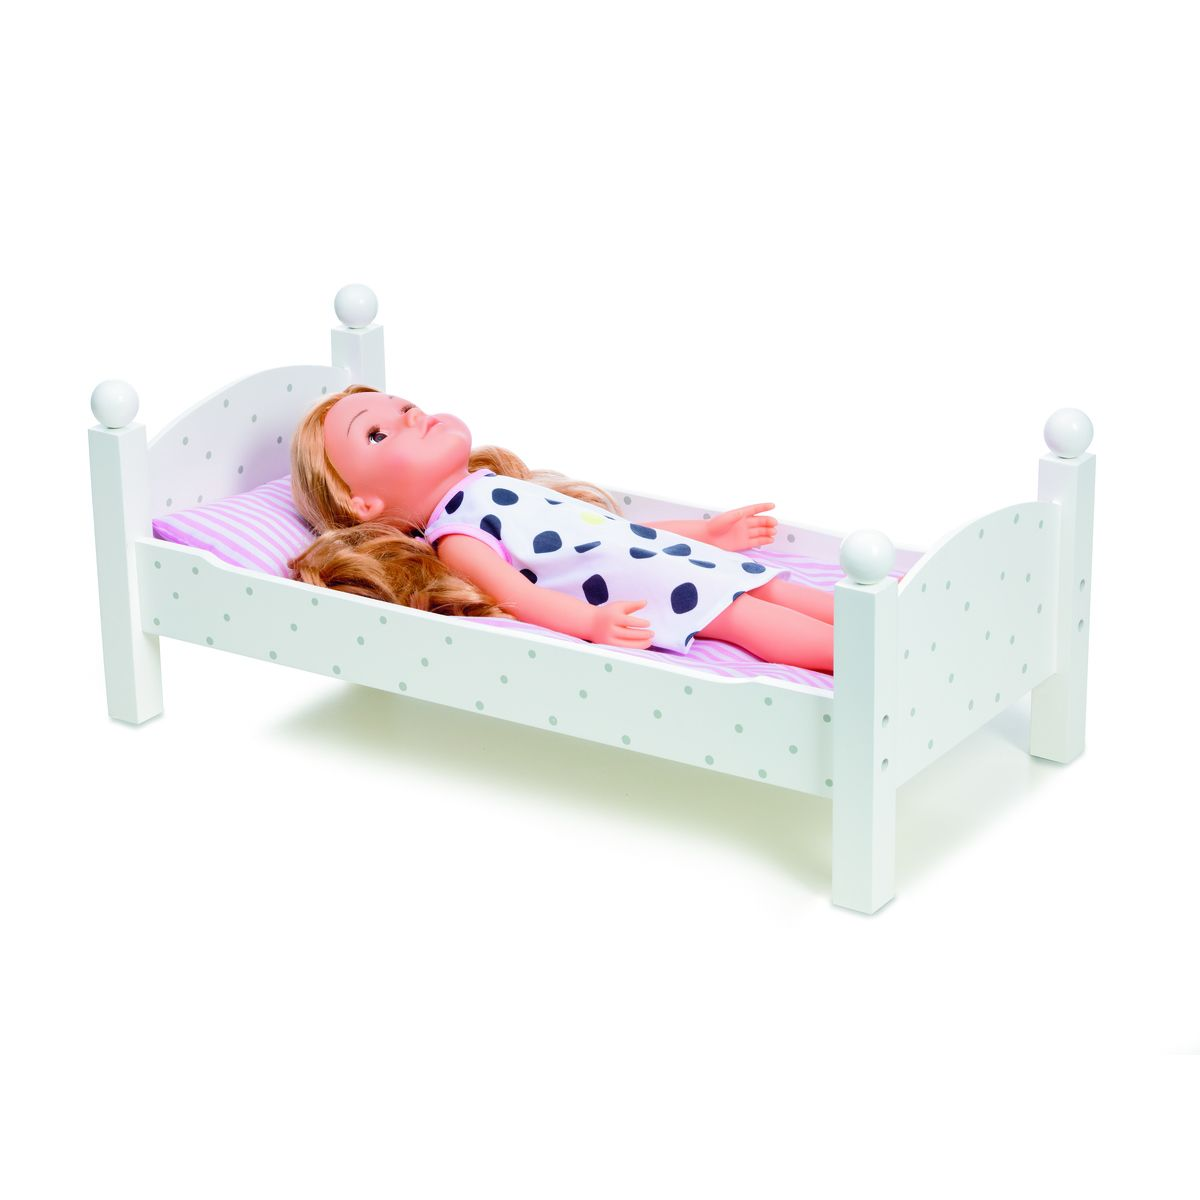 Wooden Doll Bed | Pinterest | Doll beds and Dolls